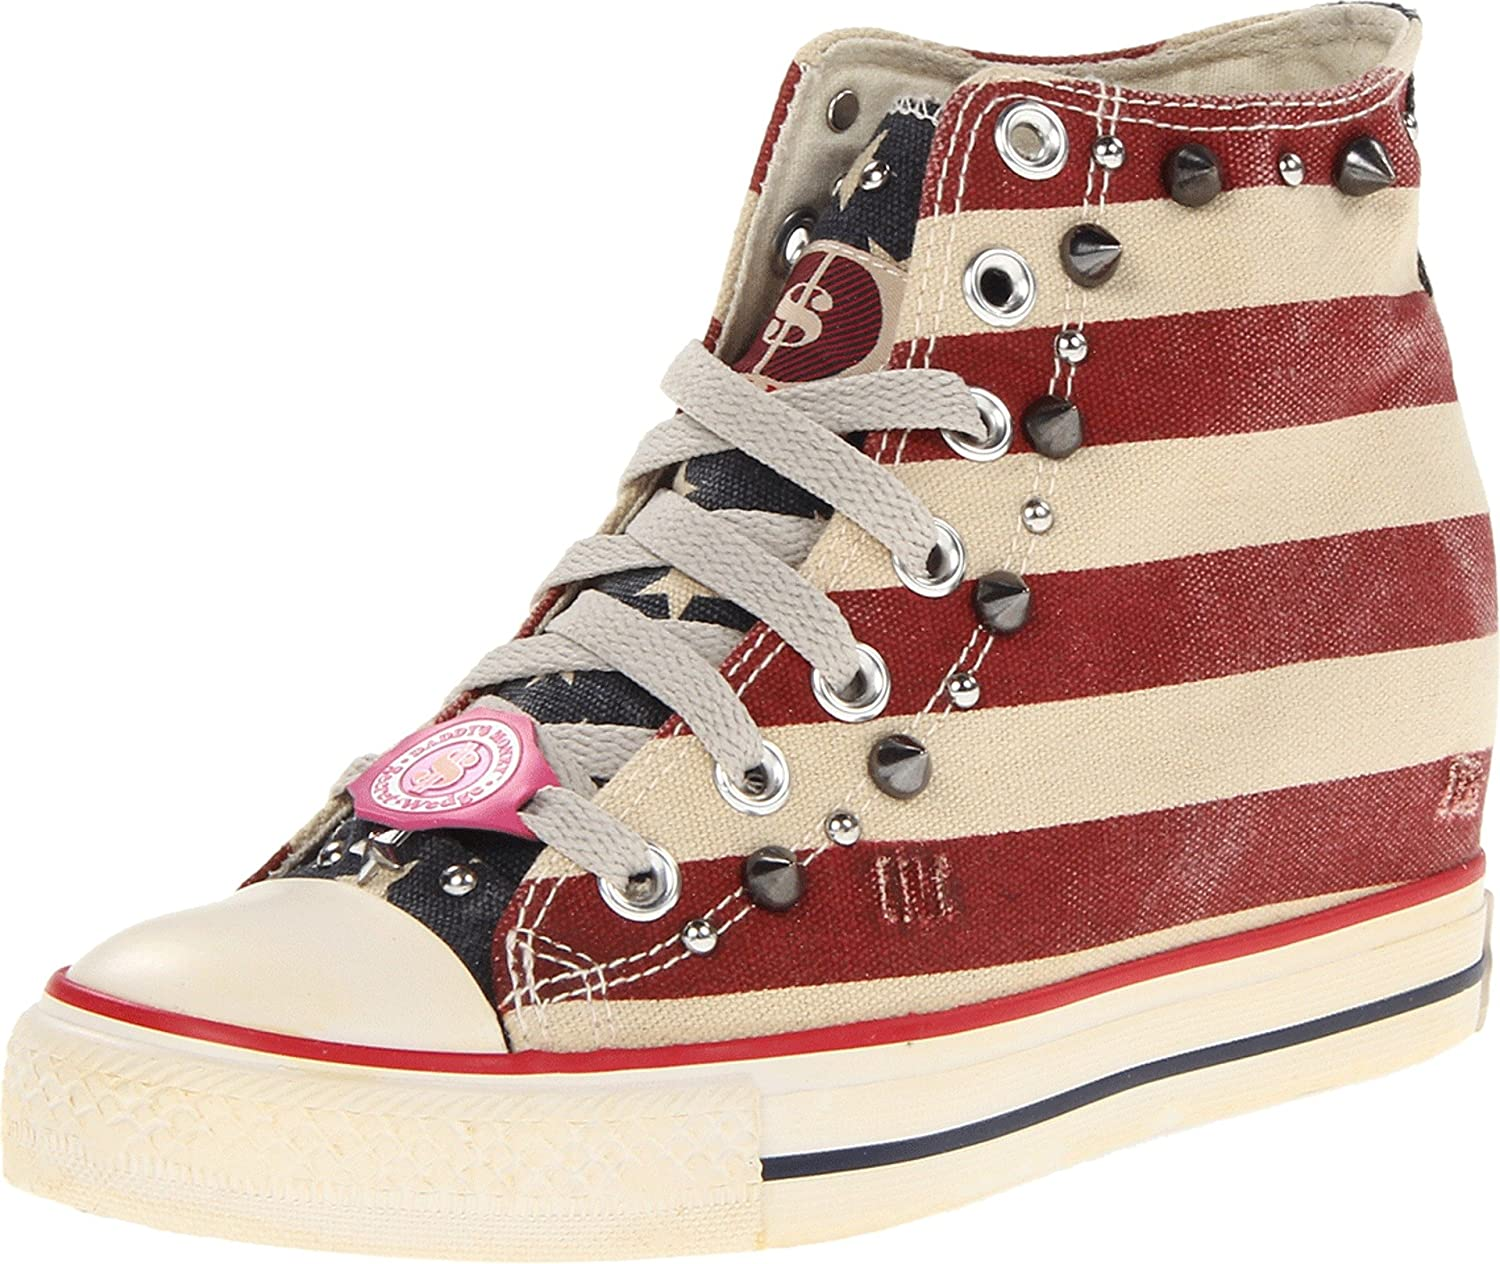 Skechers Daddy's Money Gimme Holidayz Womens Wedge High Top Sneakers